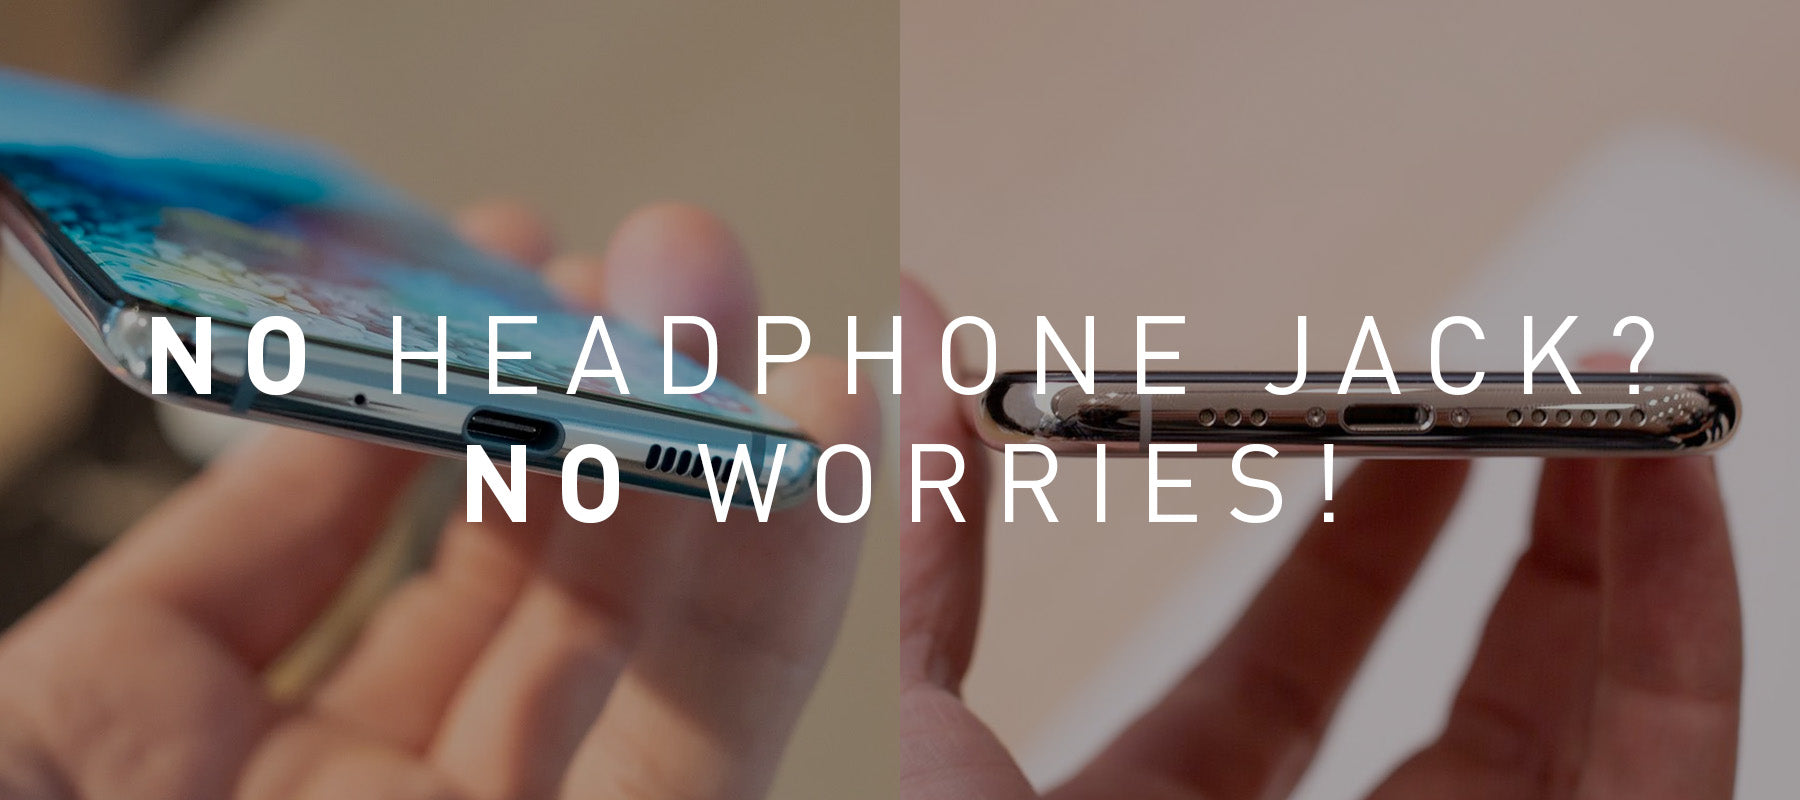 No Headphone Jack? No Worries!